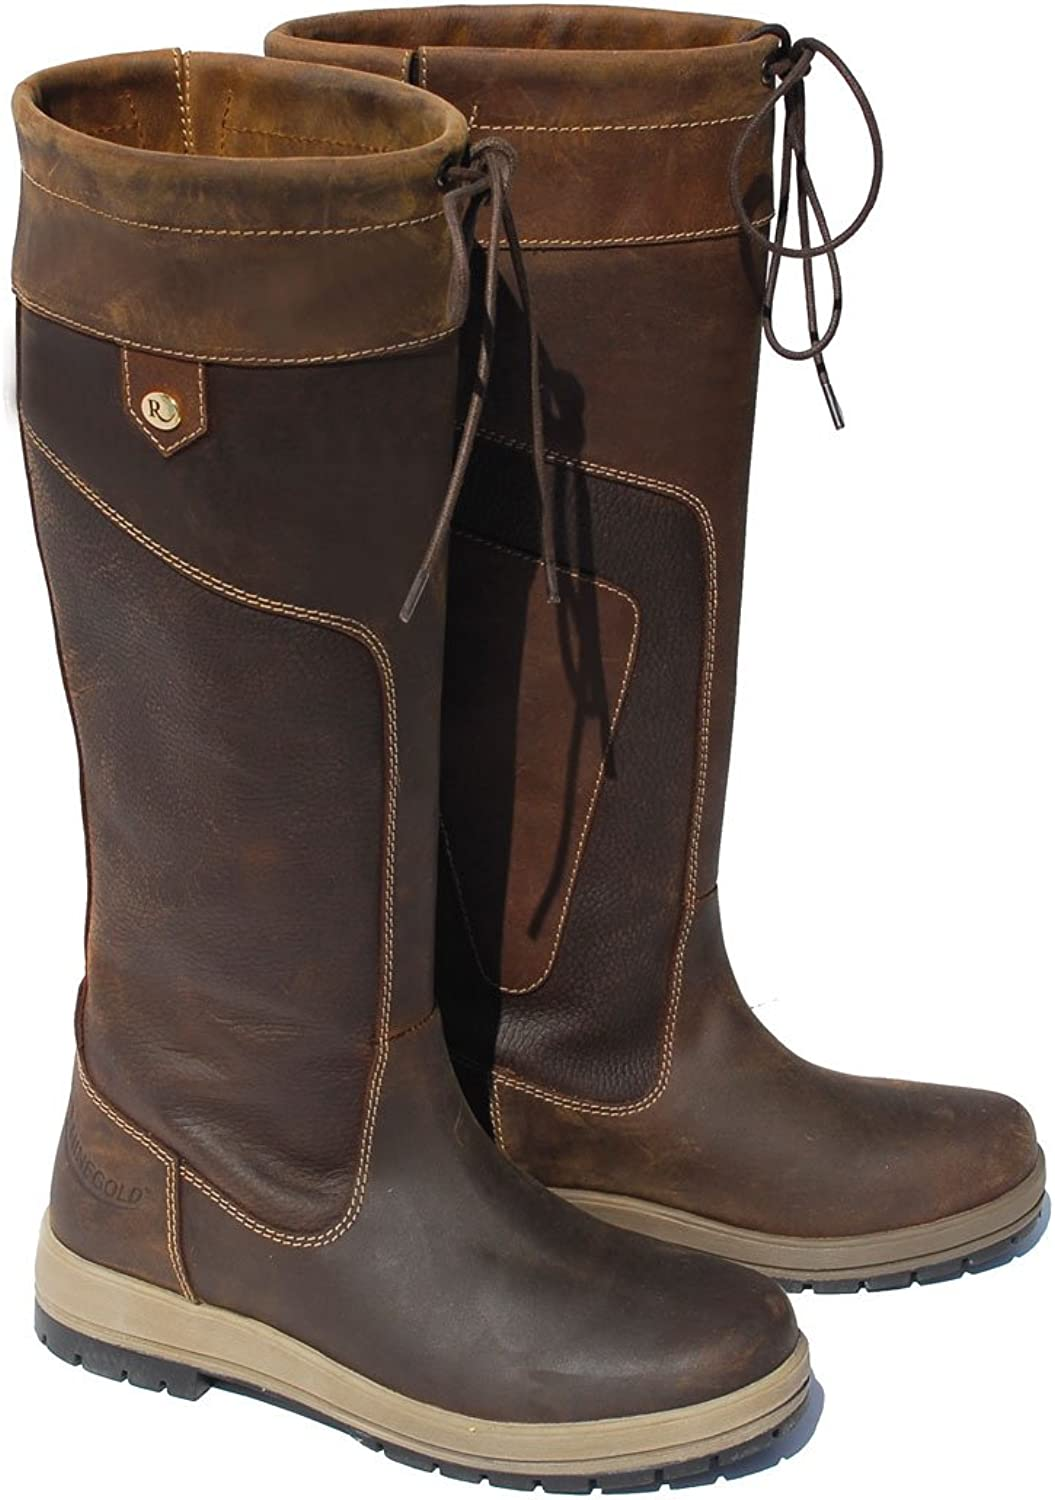 Rhinegold Elite Vermont Waterproof Leather Country Boots